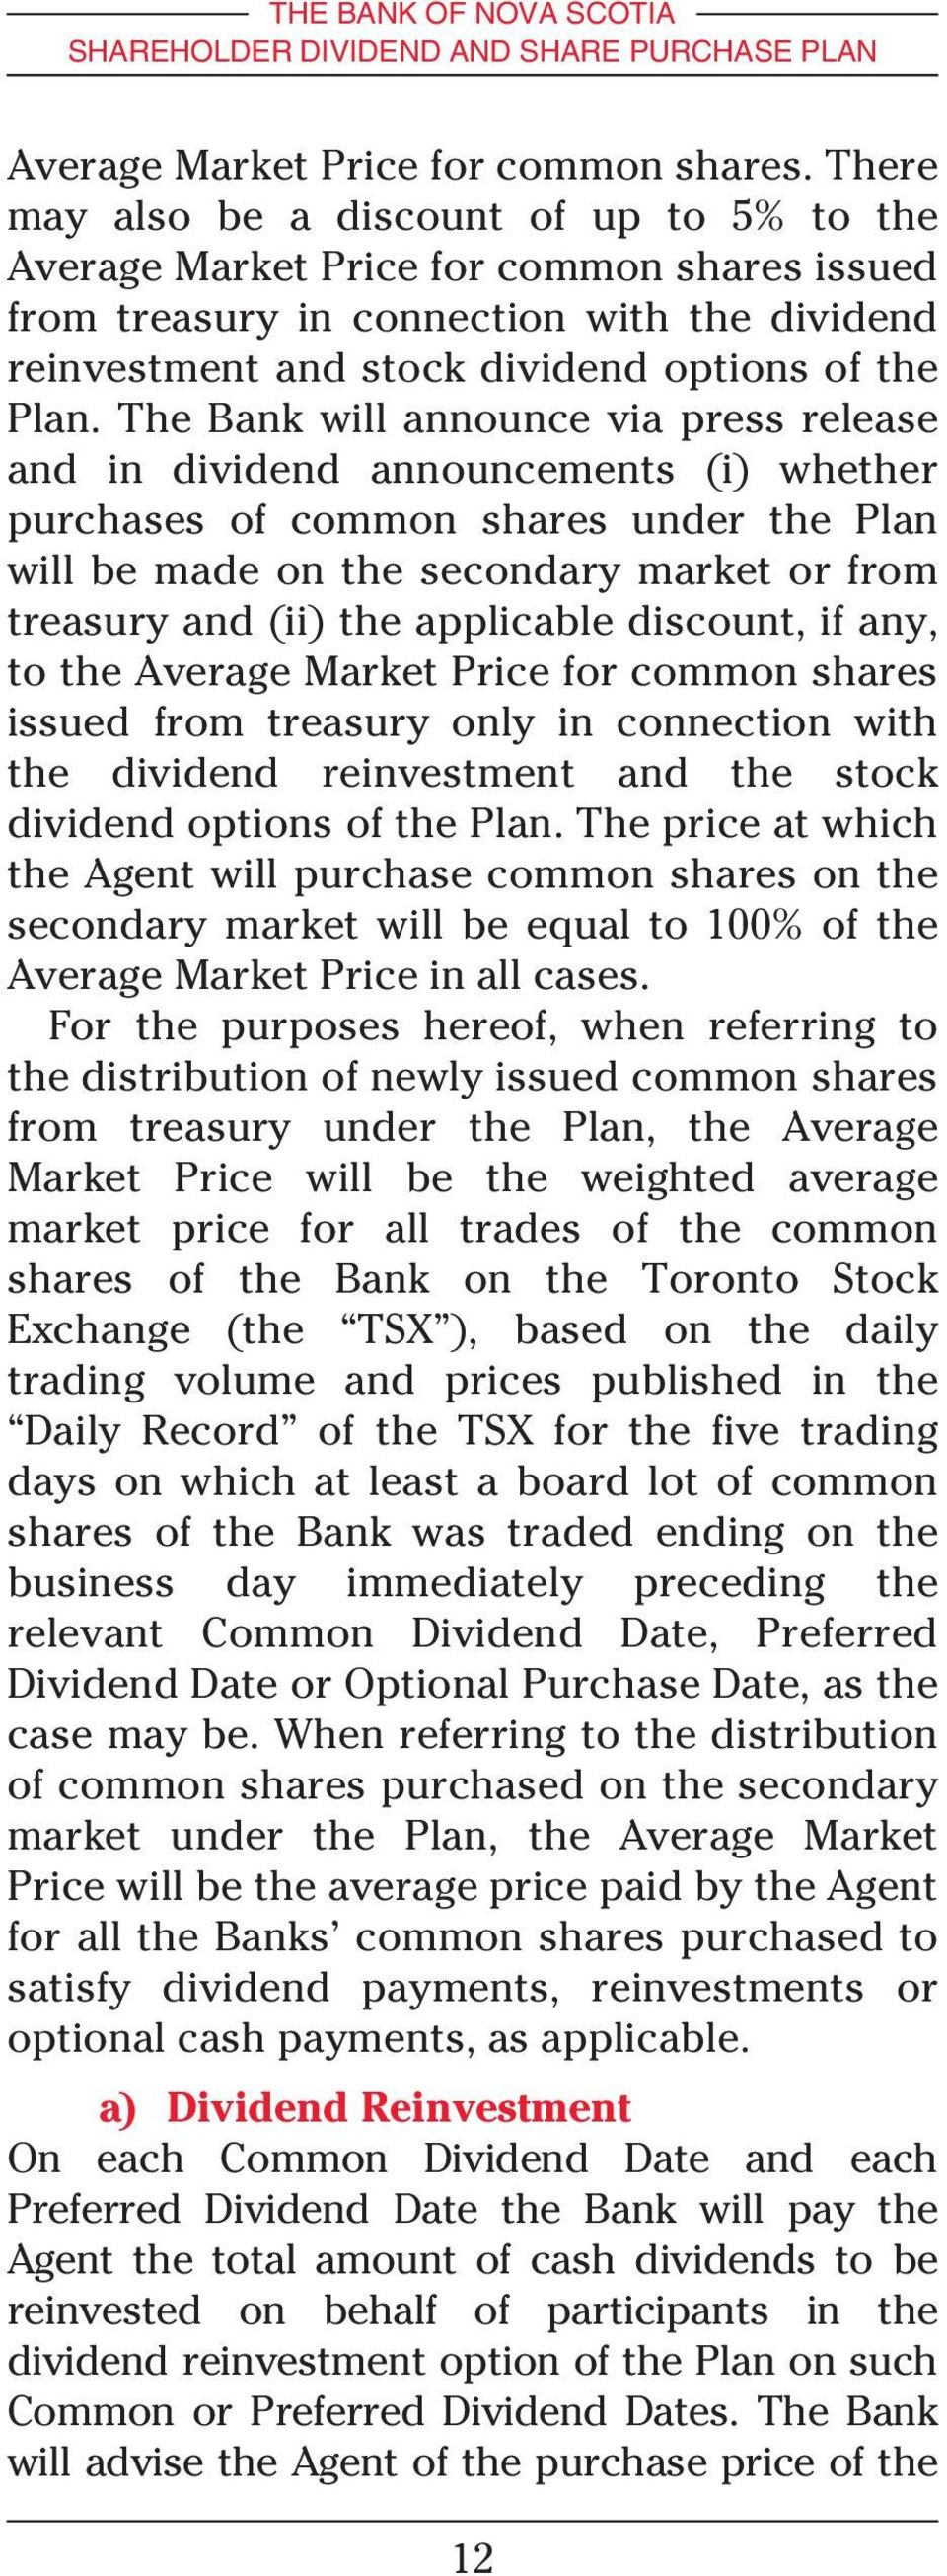 The Bank will announce via press release and in dividend announcements (i) whether purchases of common shares under the Plan will be made on the secondary market or from treasury and (ii) the